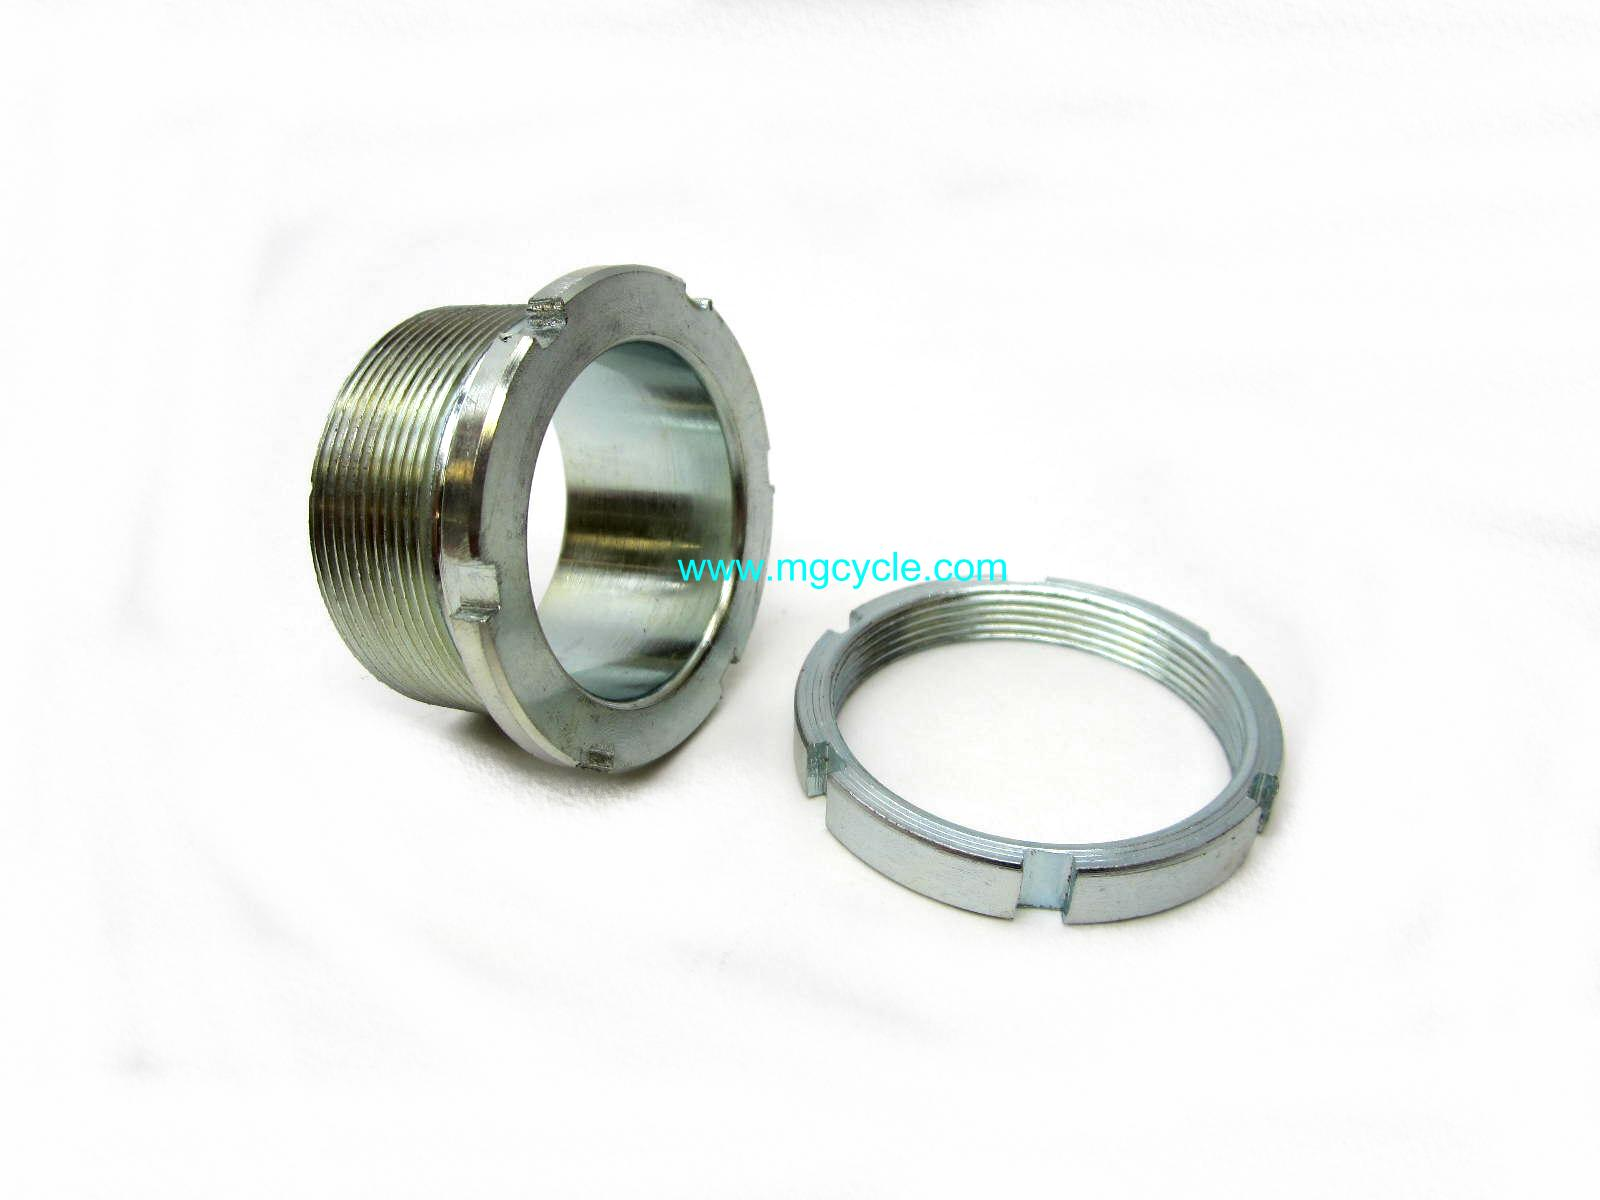 Eldorado Ambassador V700 V7 Sport exhaust nut with lock ring